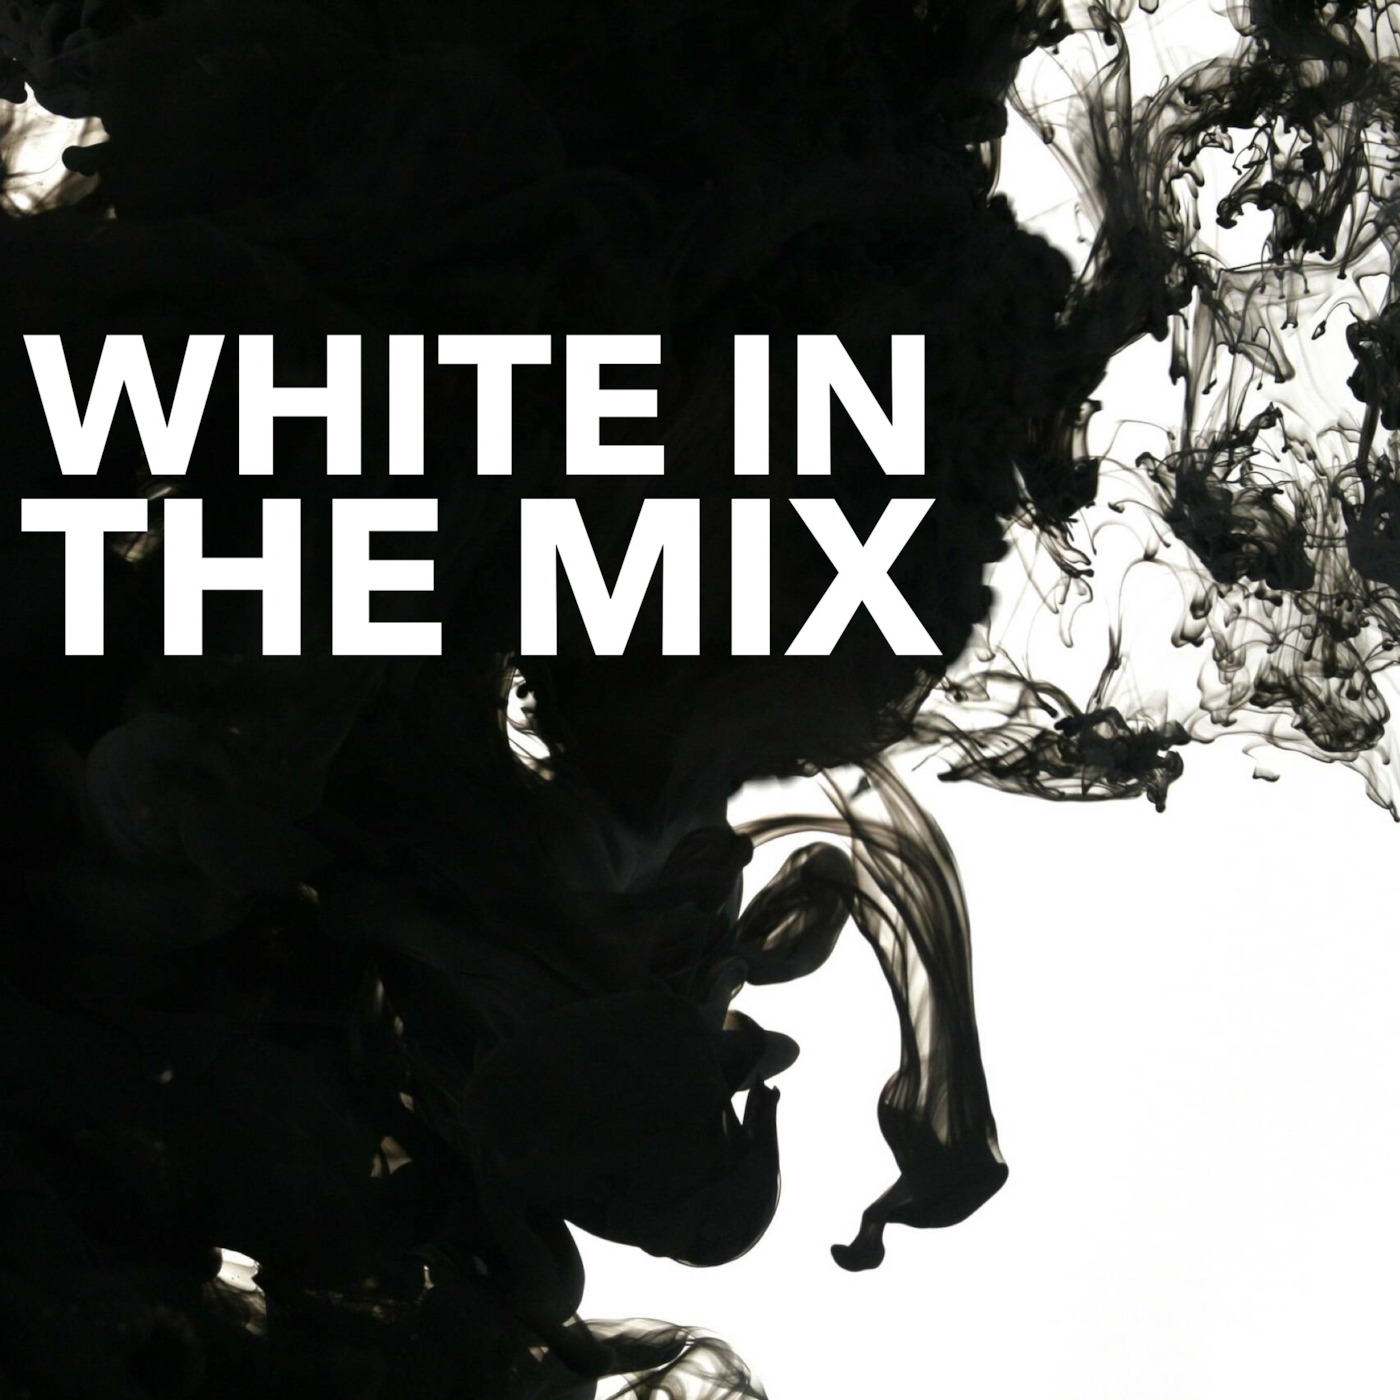 WHITE IN THE MIX